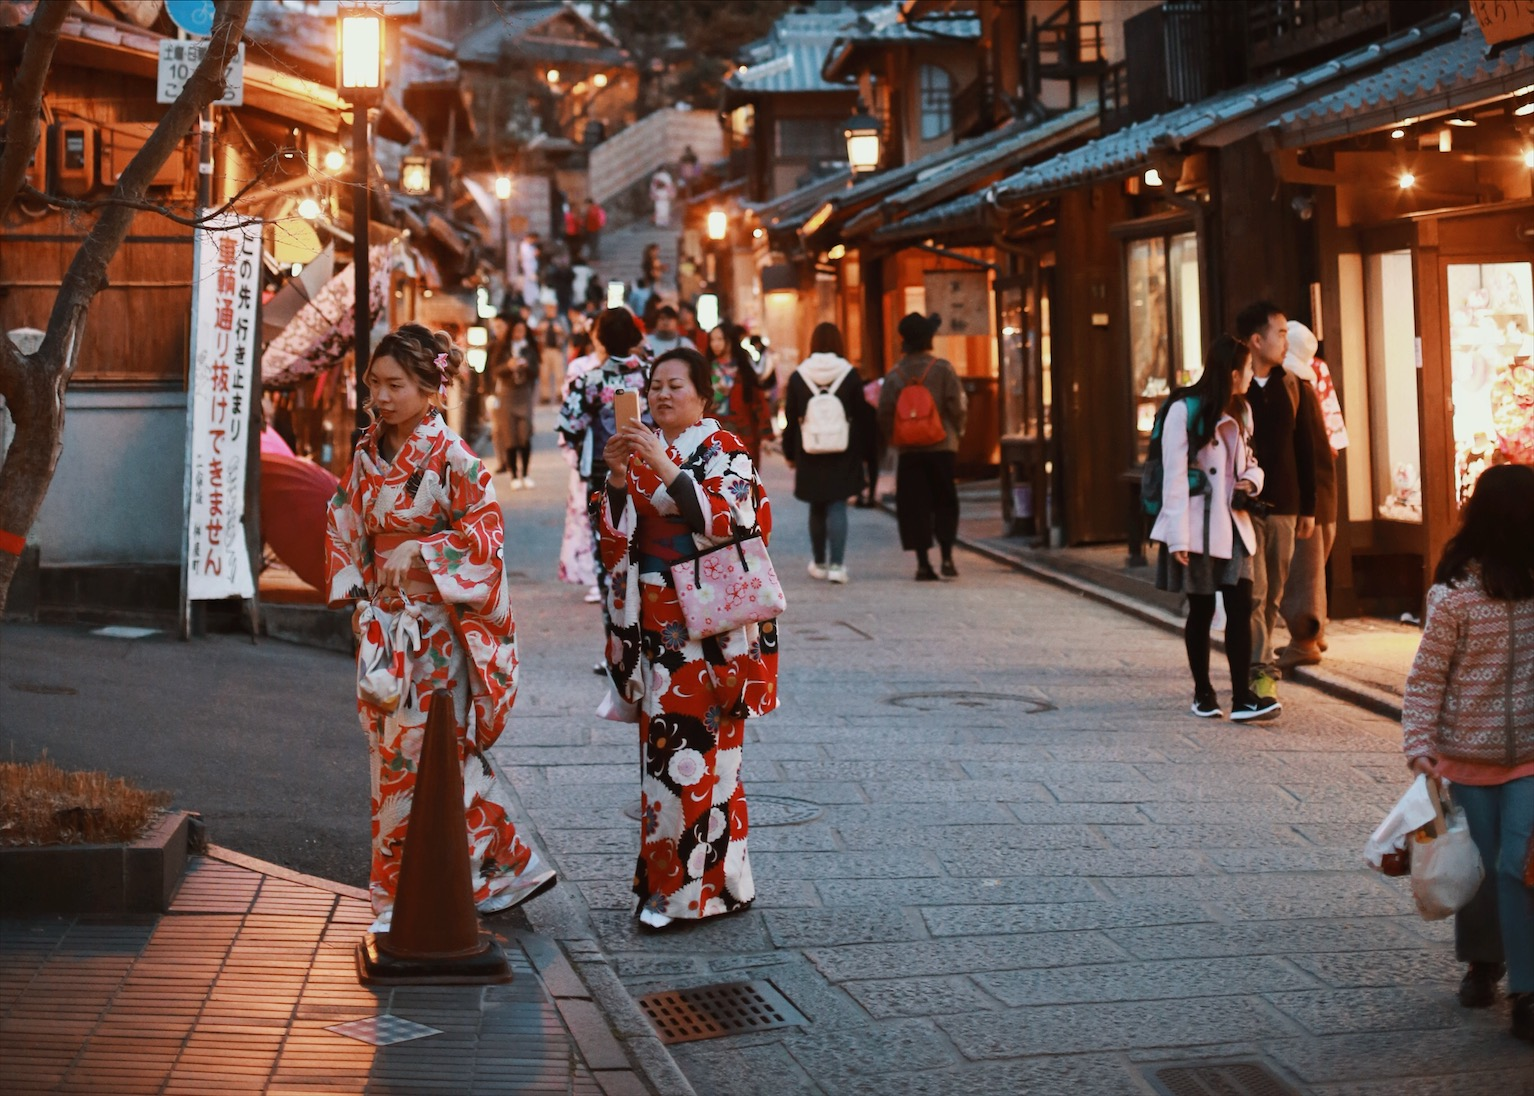 Tourists pose in rental kimonos. While we didn't have time to try on the kimonos, we wish we had. Locals in Kyoto allegedly love tourists taking the time to wear the traditional clothing. As most Japanese no longer wear such clothing except for very special occasions, the fact that tourists want to wear such clothing is seen as a reaffirmation of Kyoto's cultural legacy.